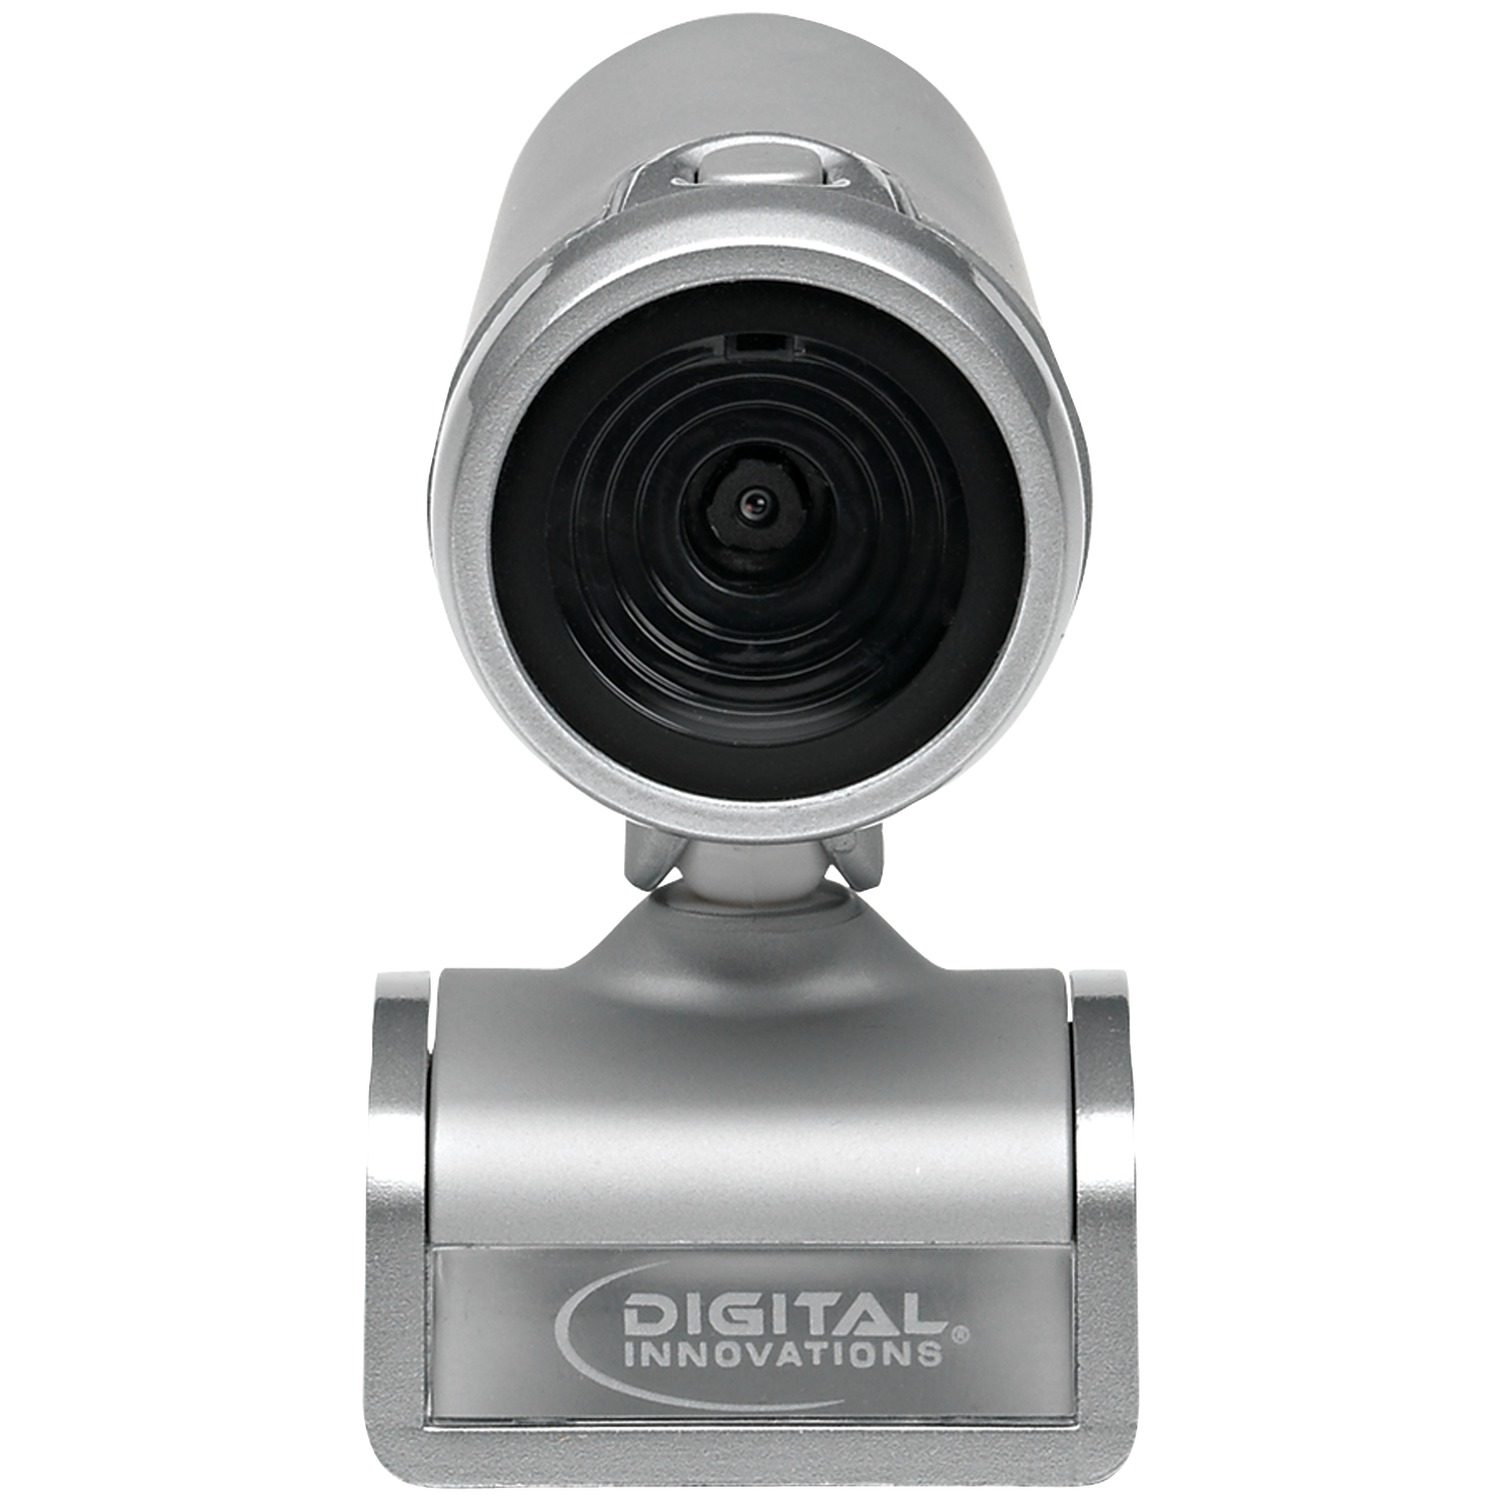 DIGITAL INNOVATIONS 4310500 1080p ChatCam(TM) Webcam